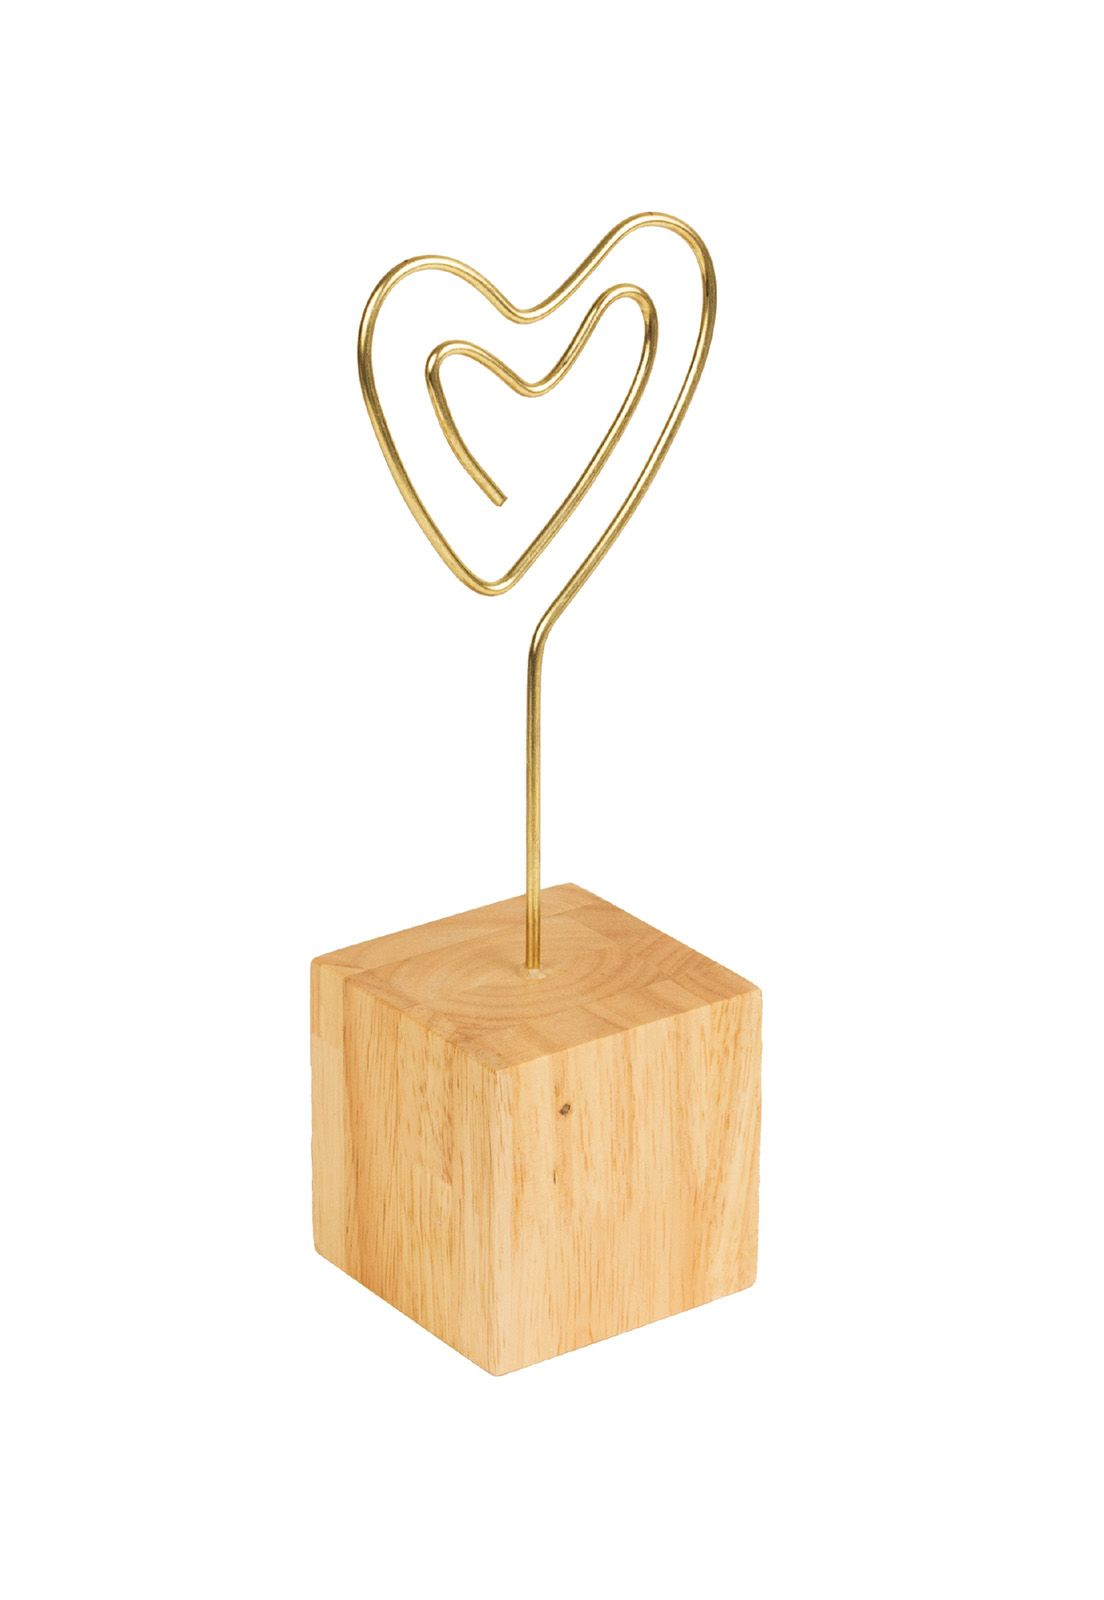 Desk Photo Clip Light Wood Block Heart